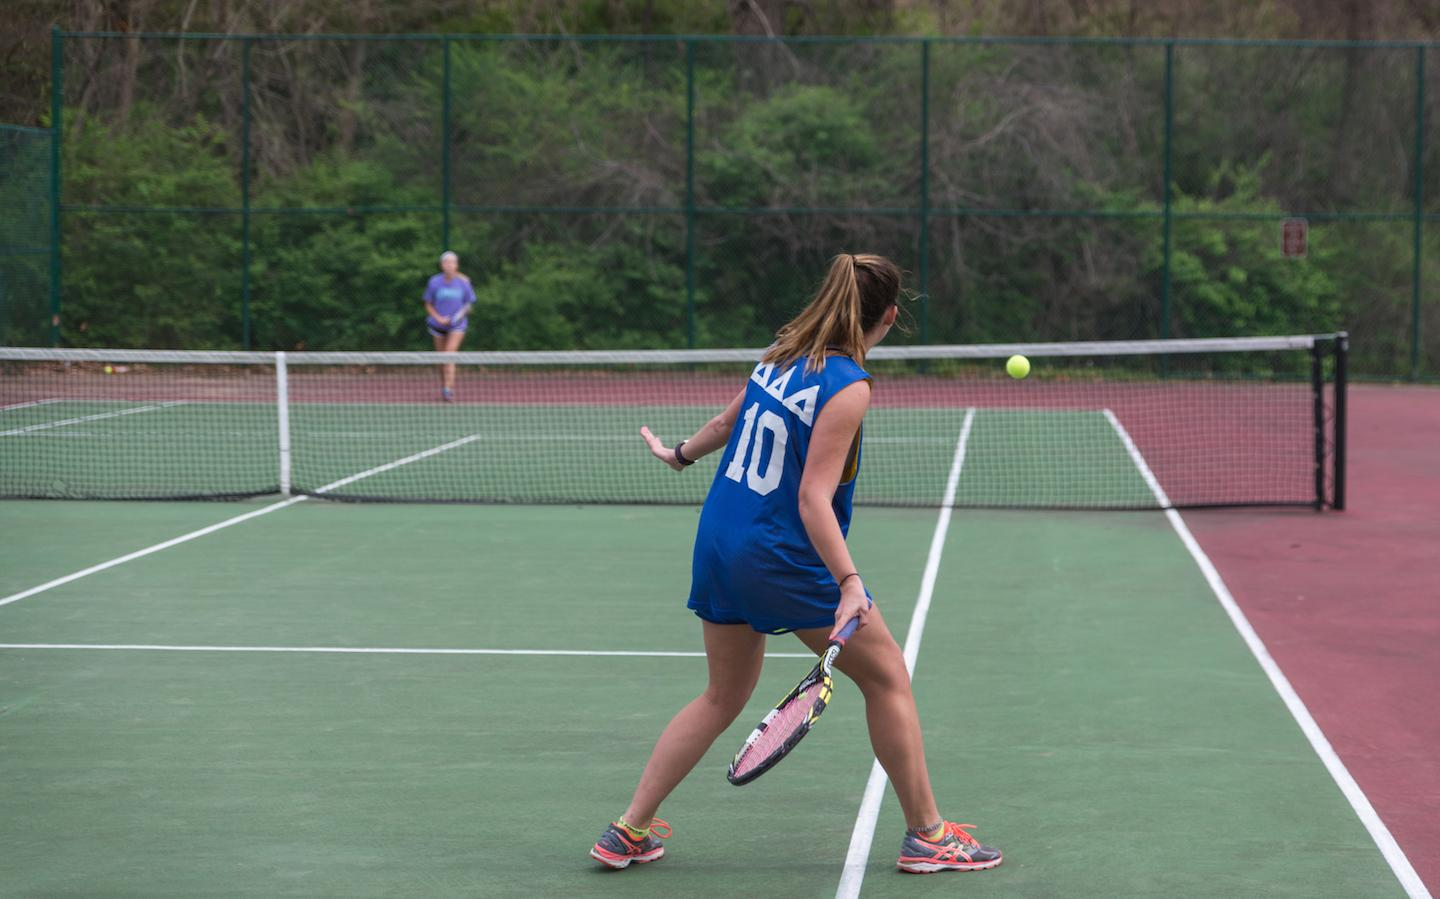 Registration for the Spring tennis tournament is open from March 26 until April 4. Click the slide to register.